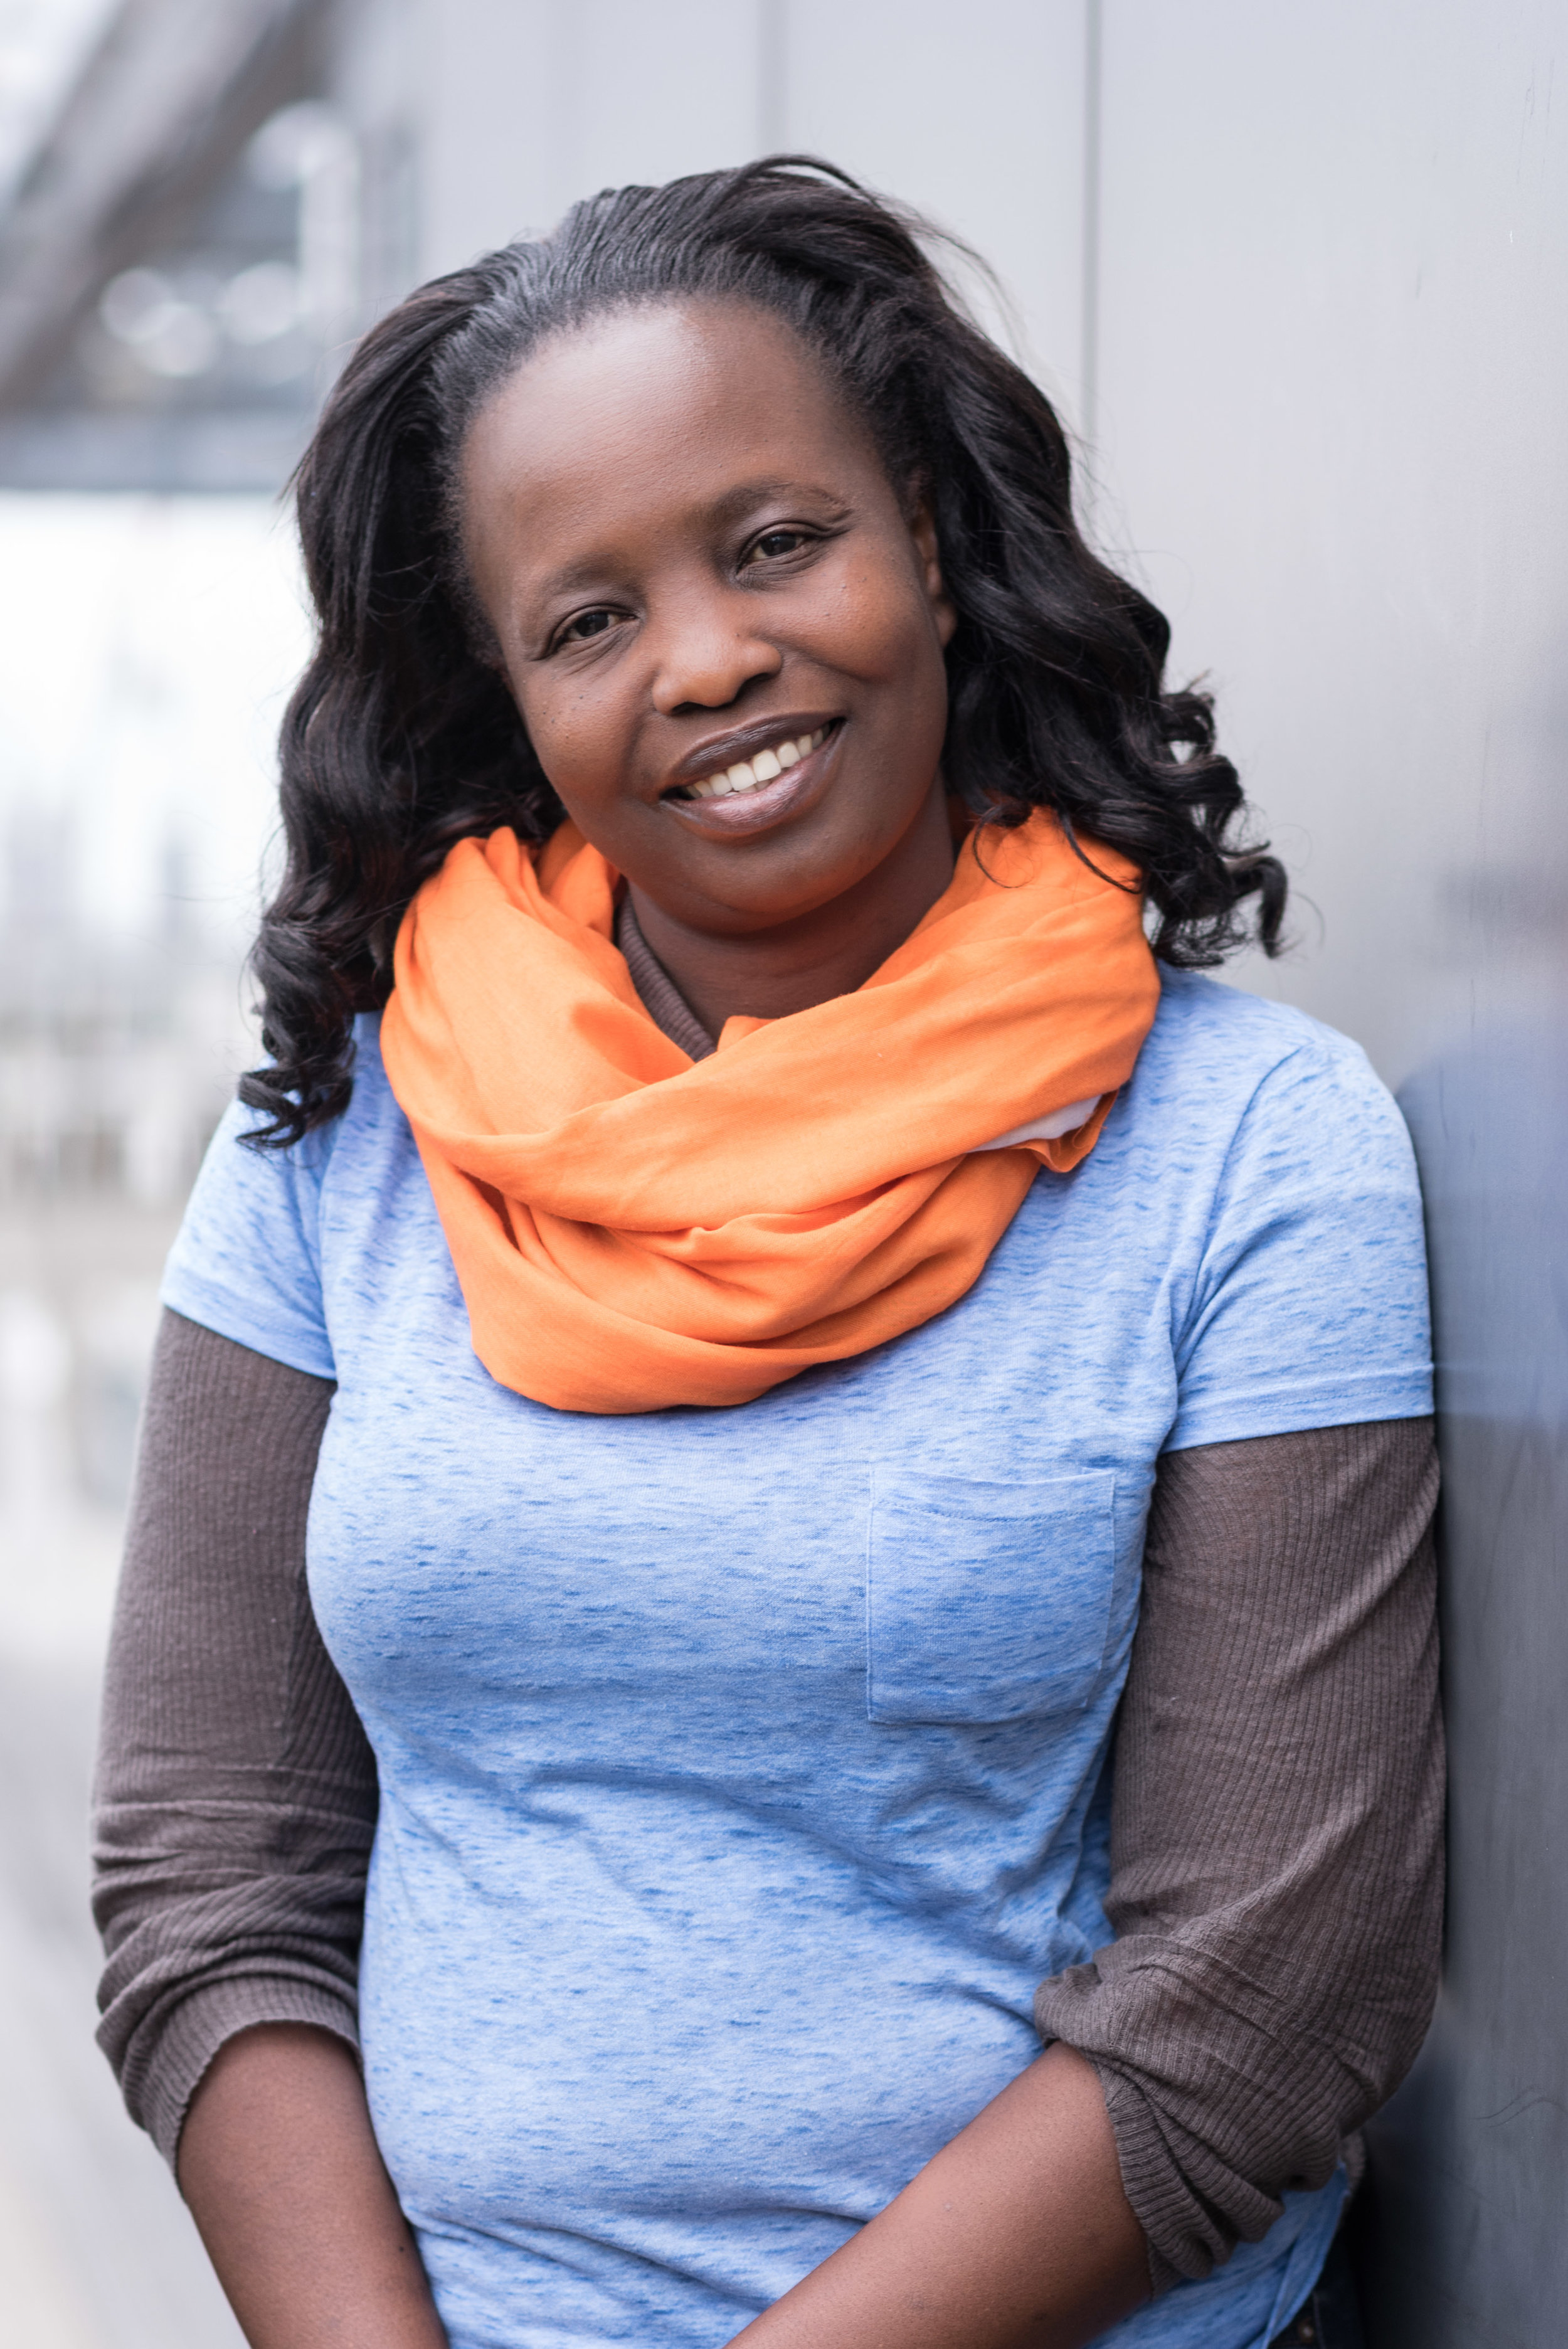 Roseline Orwa - 2018-19 Atlantic Fellow for Social and Economic Equity